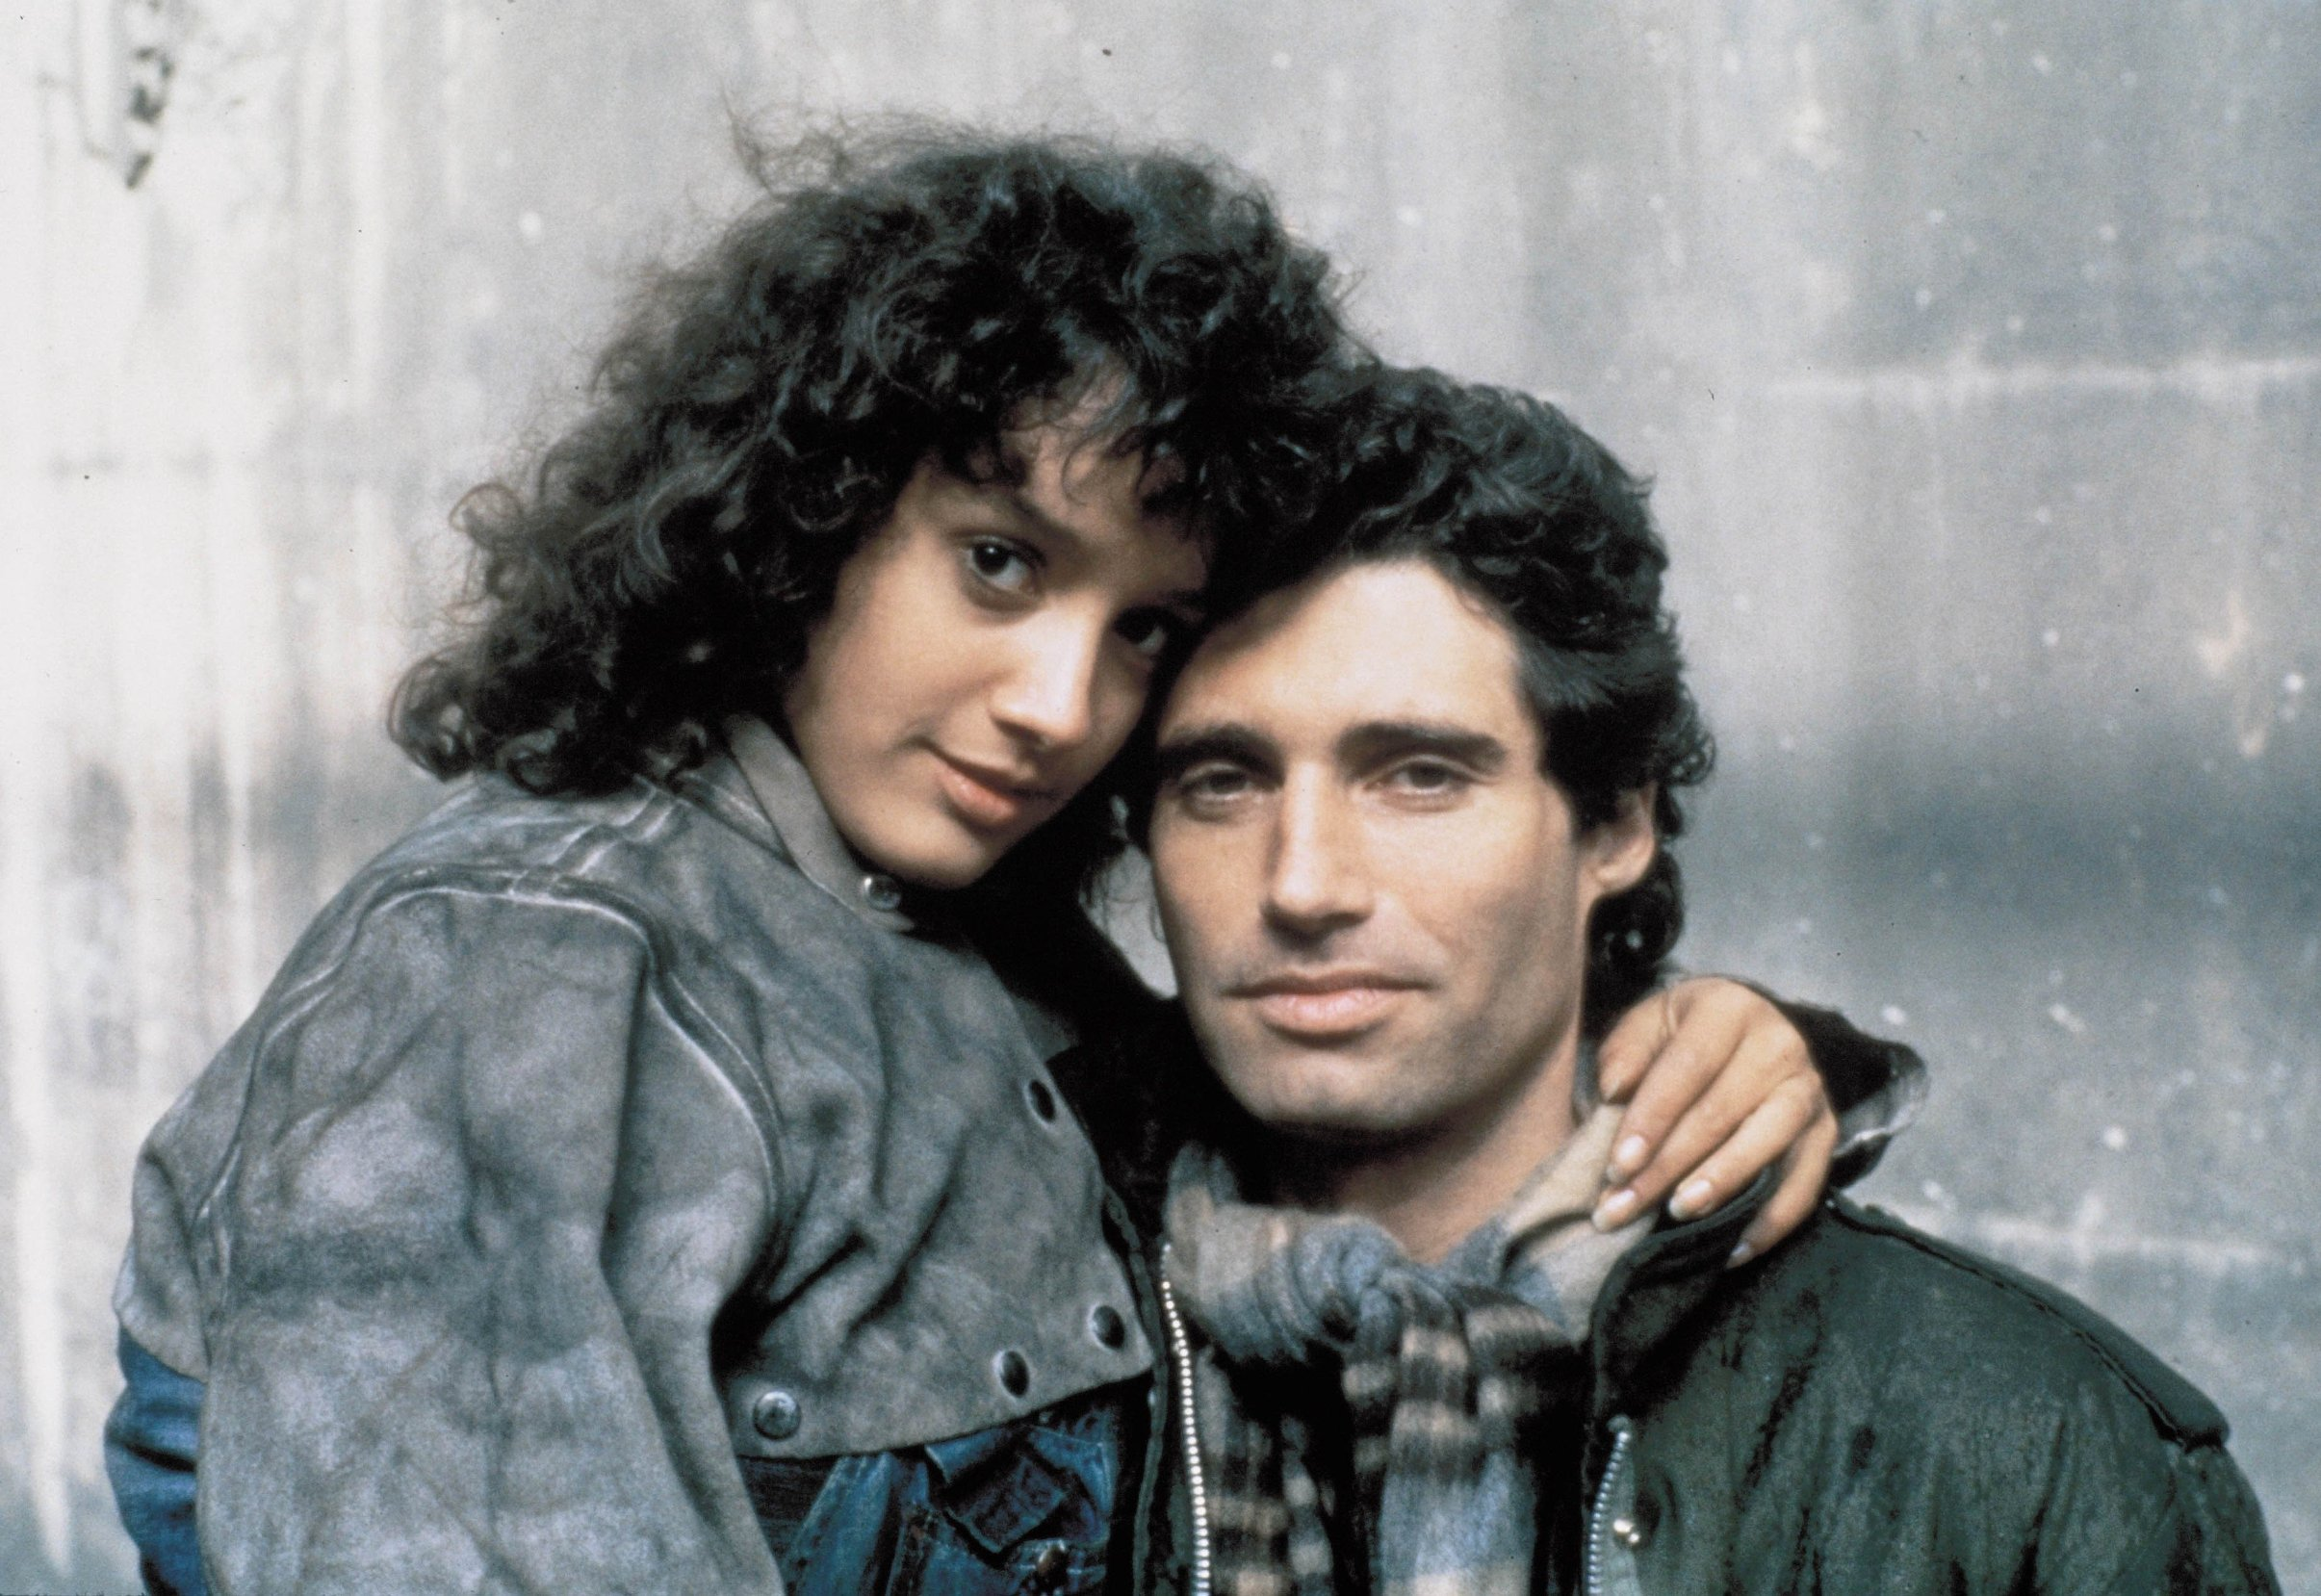 1983; Flashdance. Original Film Title: Flashdance, PICTURED: JENNIFER BEALS, MICHAEL NOURI, Director: Adrian Lyne, IN CAST: Jennifer Beals, Armand Assante, Irene Cara, Michael Nouri, Robert Wuhl, Elisabeth Sagal, Ron Karabatsos, Image: 94320521, License: Rights-managed, Restrictions: This image is NOT available for commercial or promotional use and is being made available for editorial reference usage only., Model Release: no, Credit line: Profimedia, Entertainment Pictures